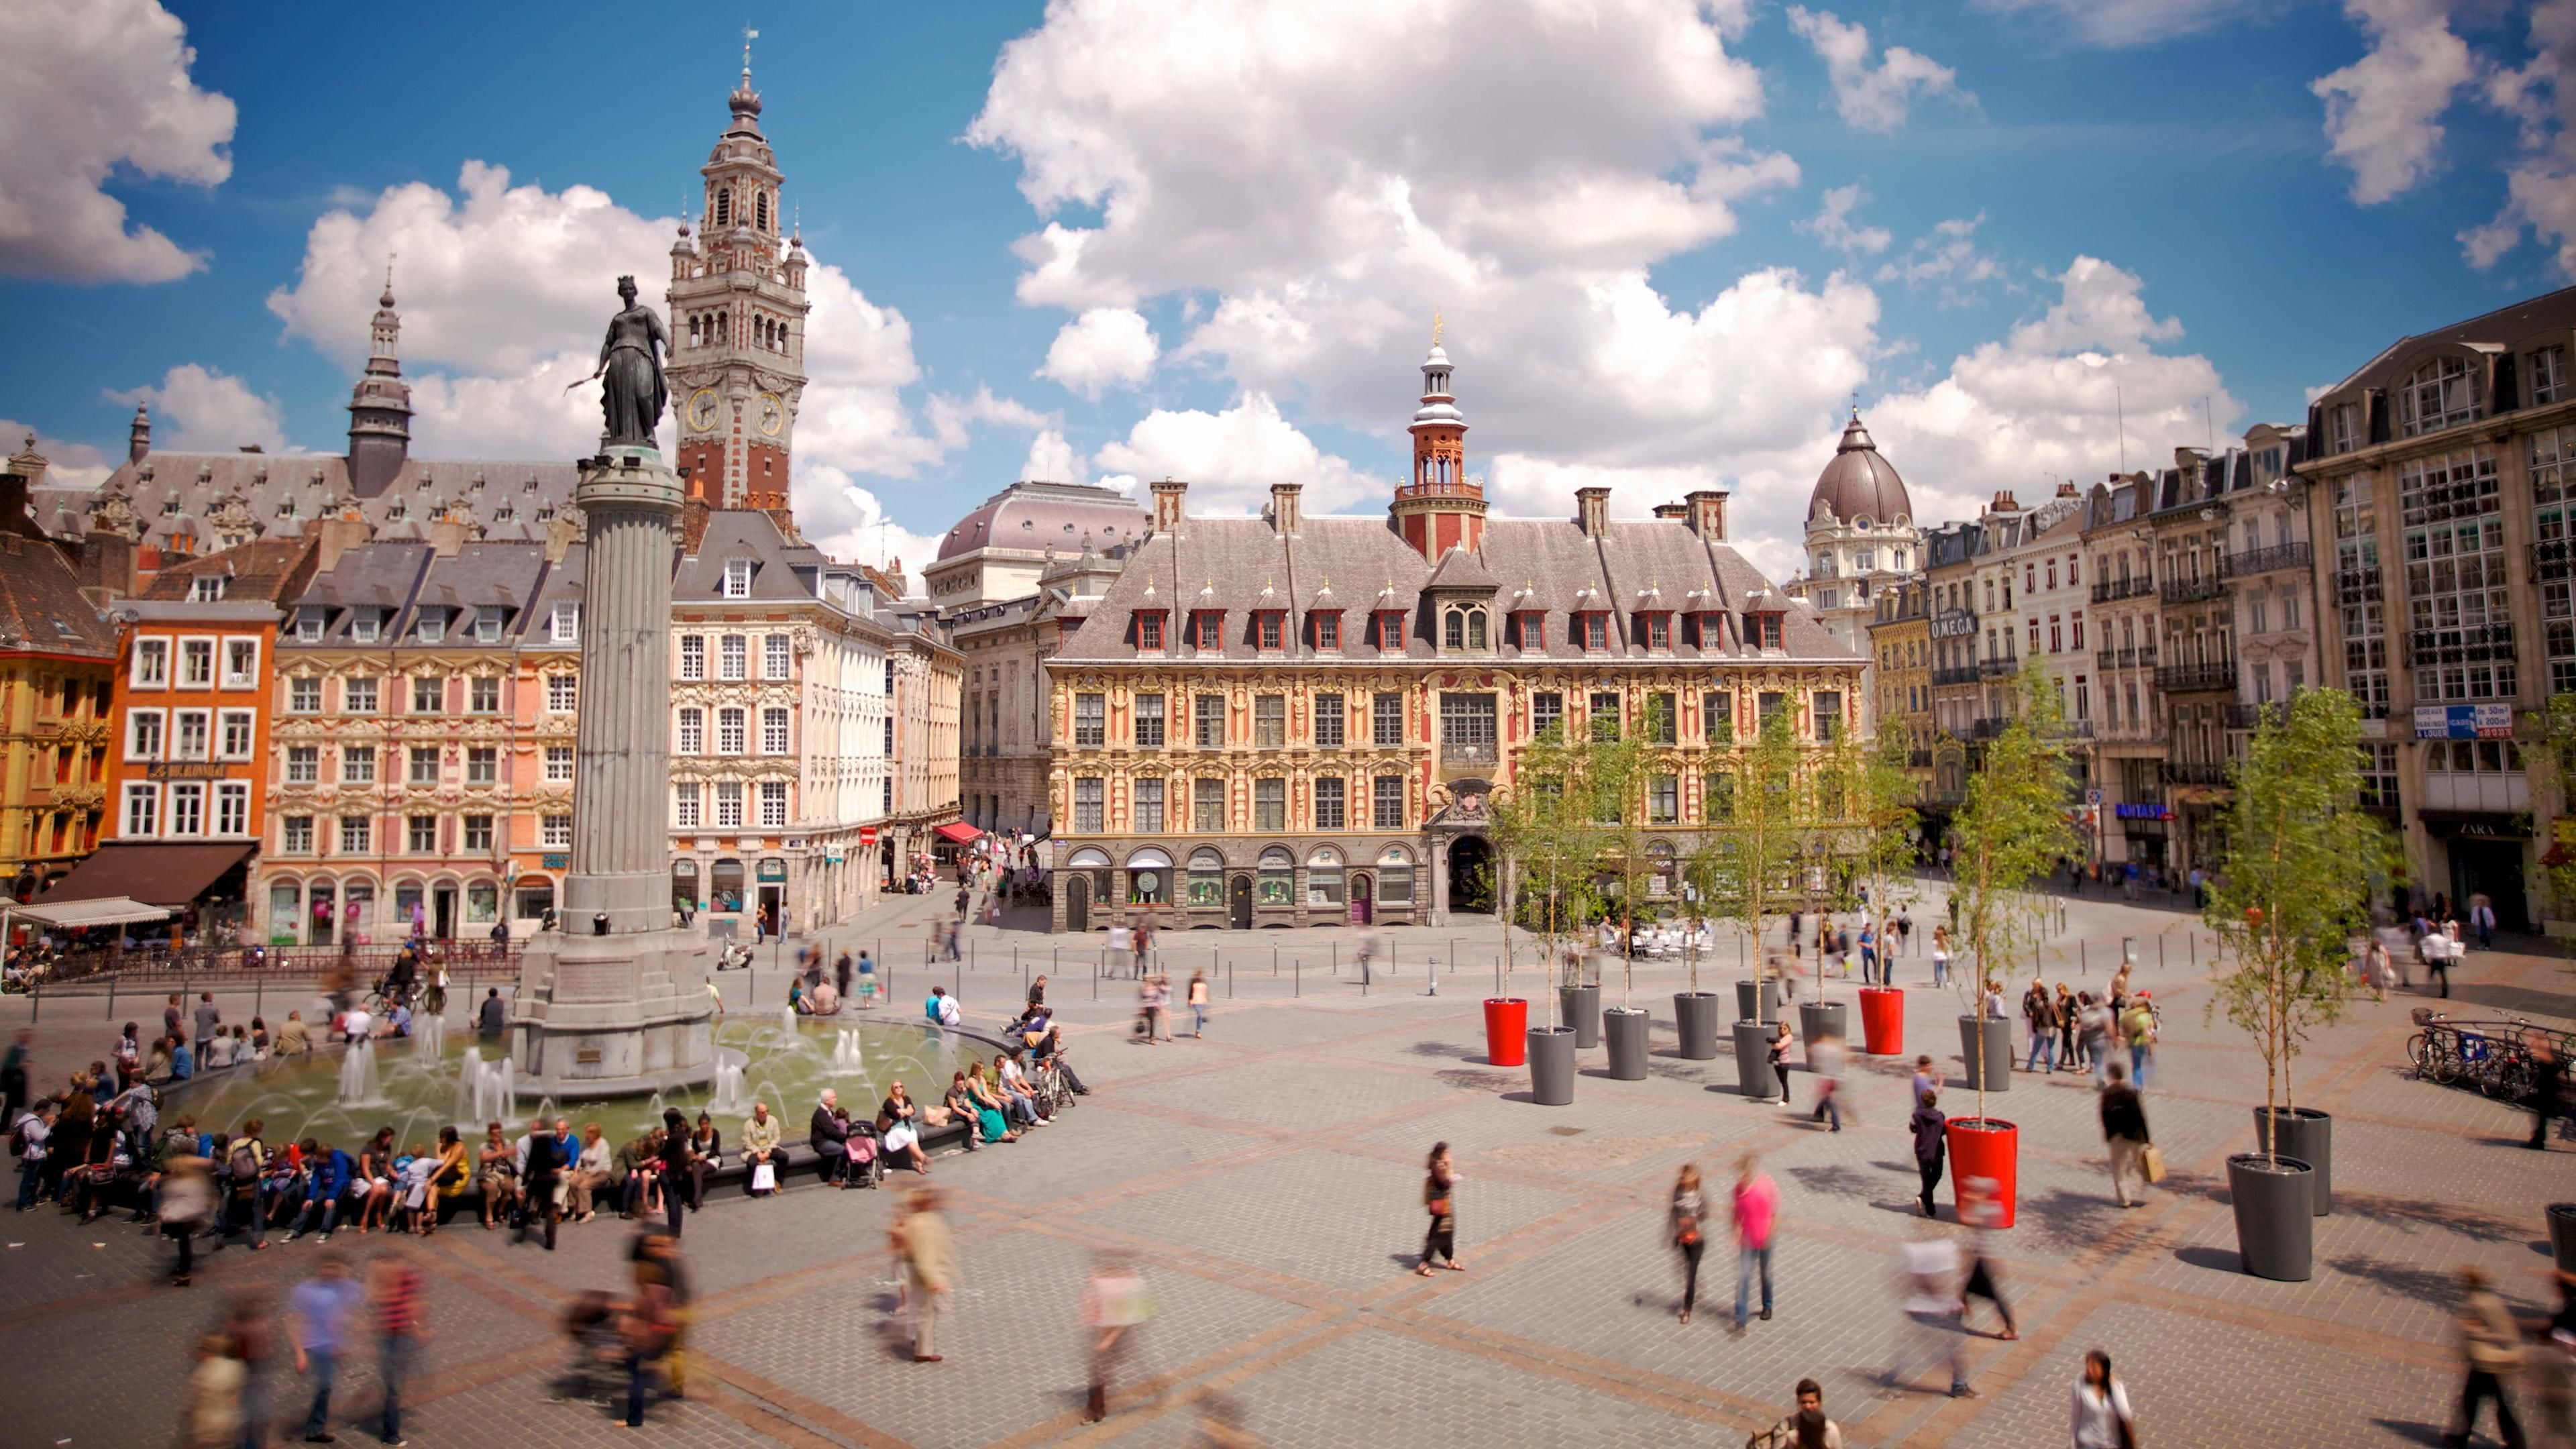 Stunning day view on the tour of Old Lille